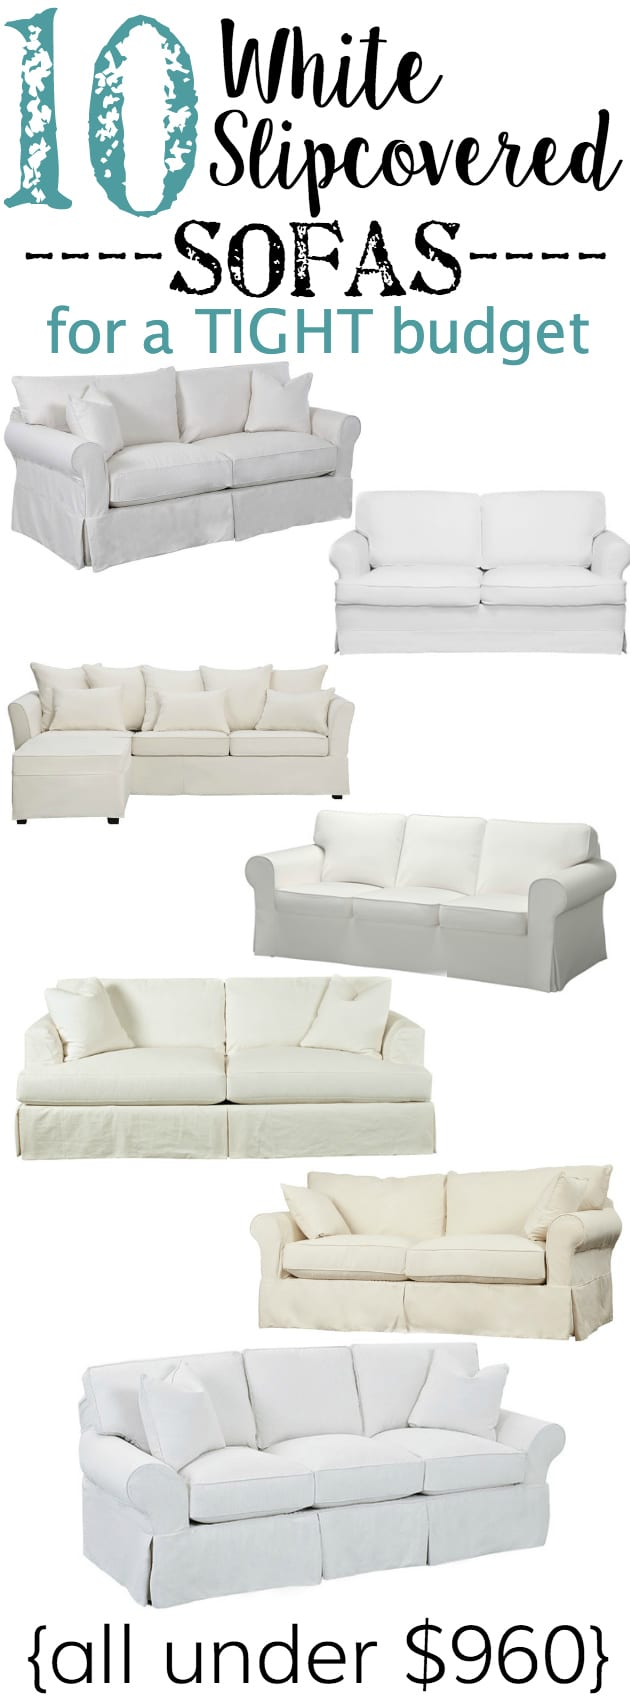 10 White Slipcovered Sofas For A Tight Budget | Blesserhouse.com   A  Shopping Guide